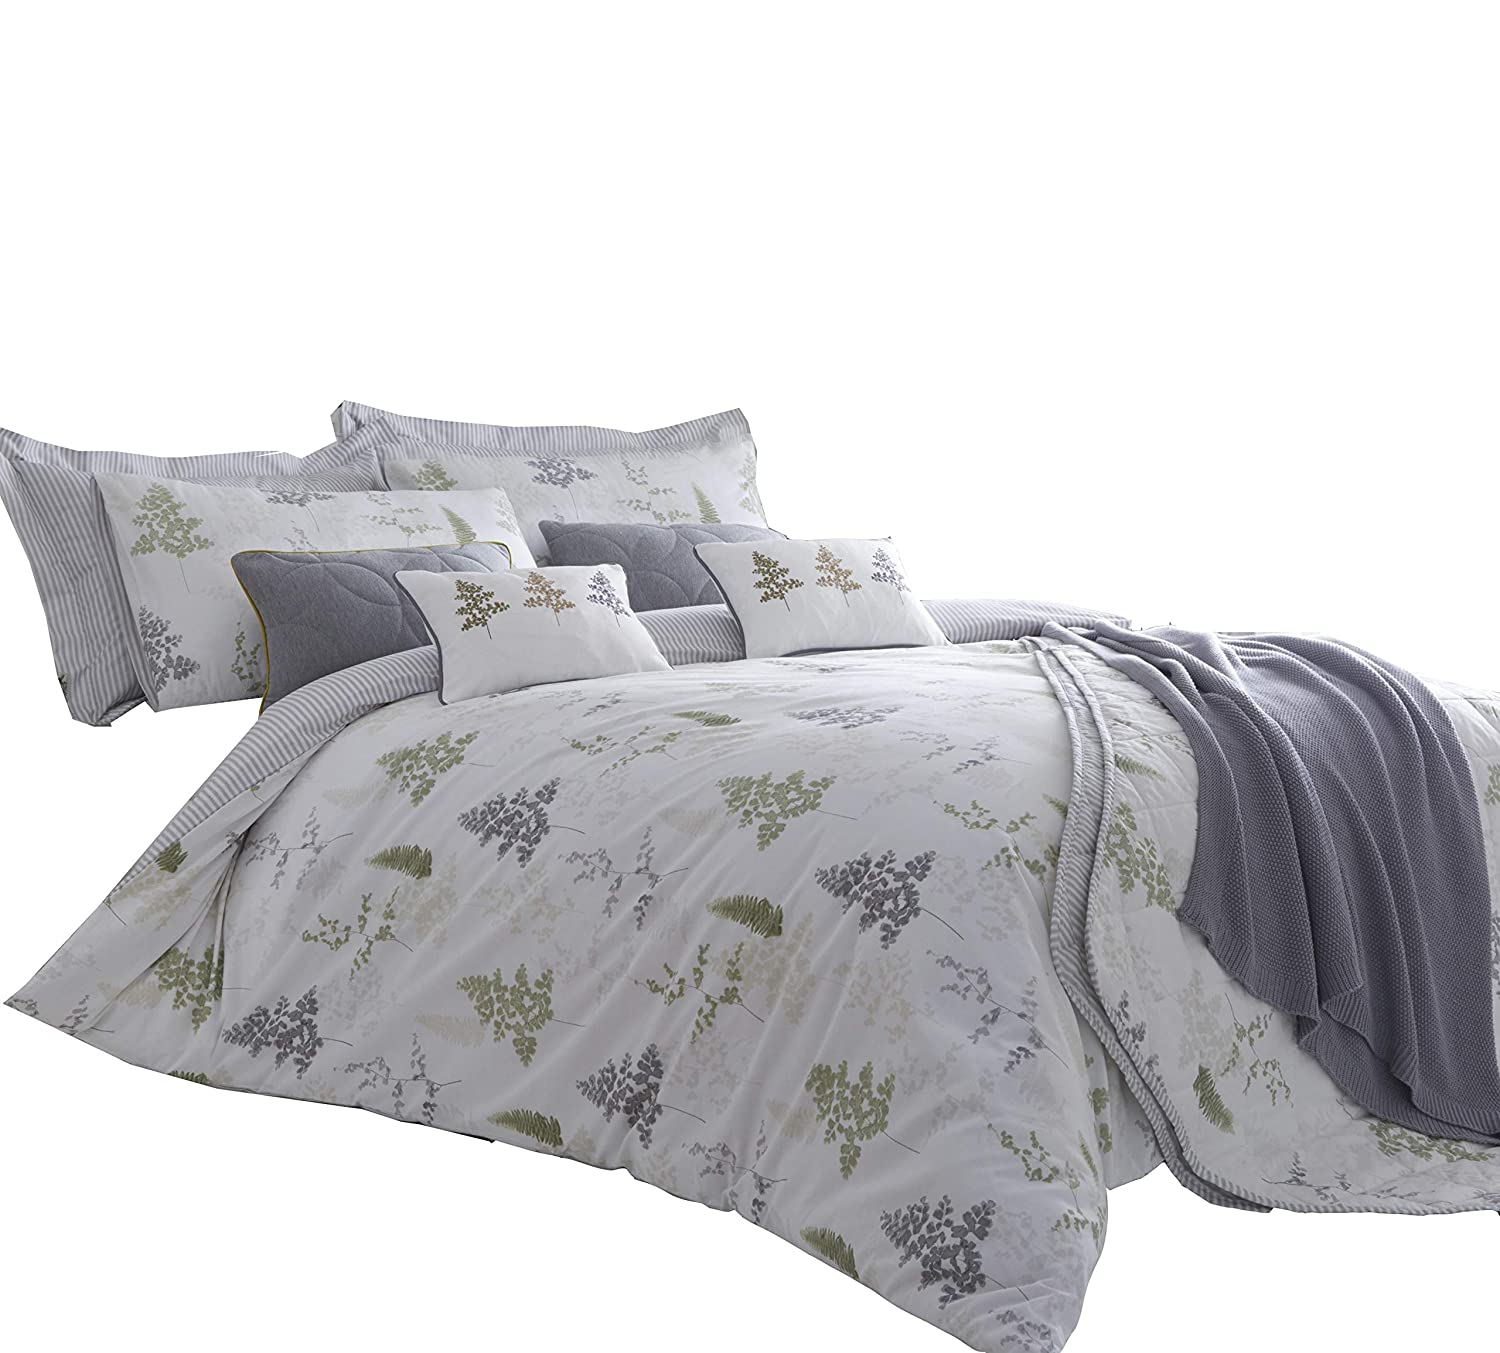 Green Grey Fern and Leaf Print Cotton Blend Reversible Duvet Cover Set With Matching Pillowcases - Double JR